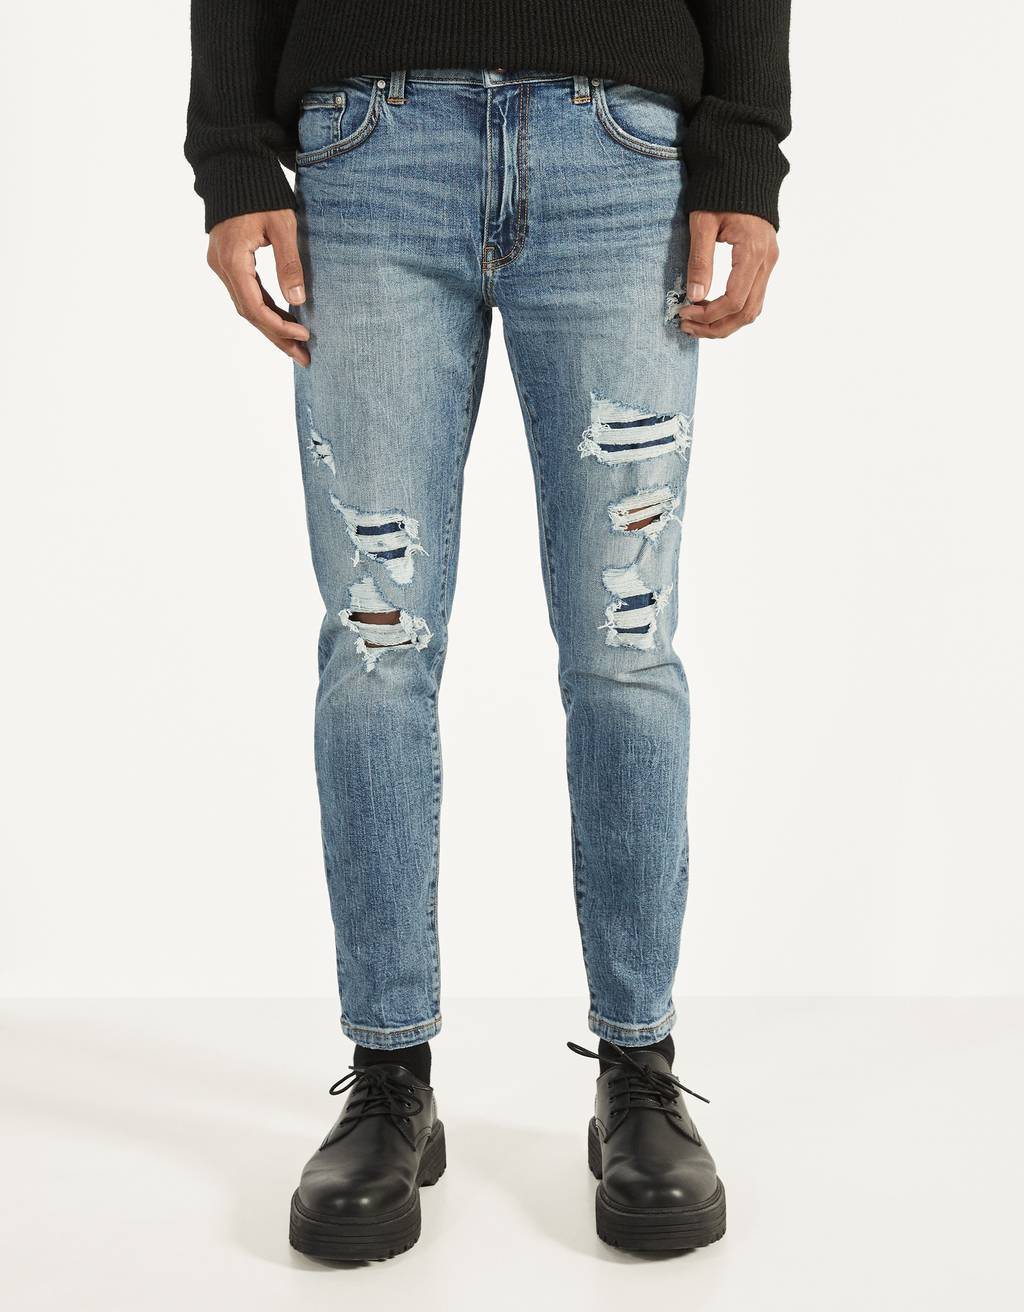 Jeans Skinny Fit con parches